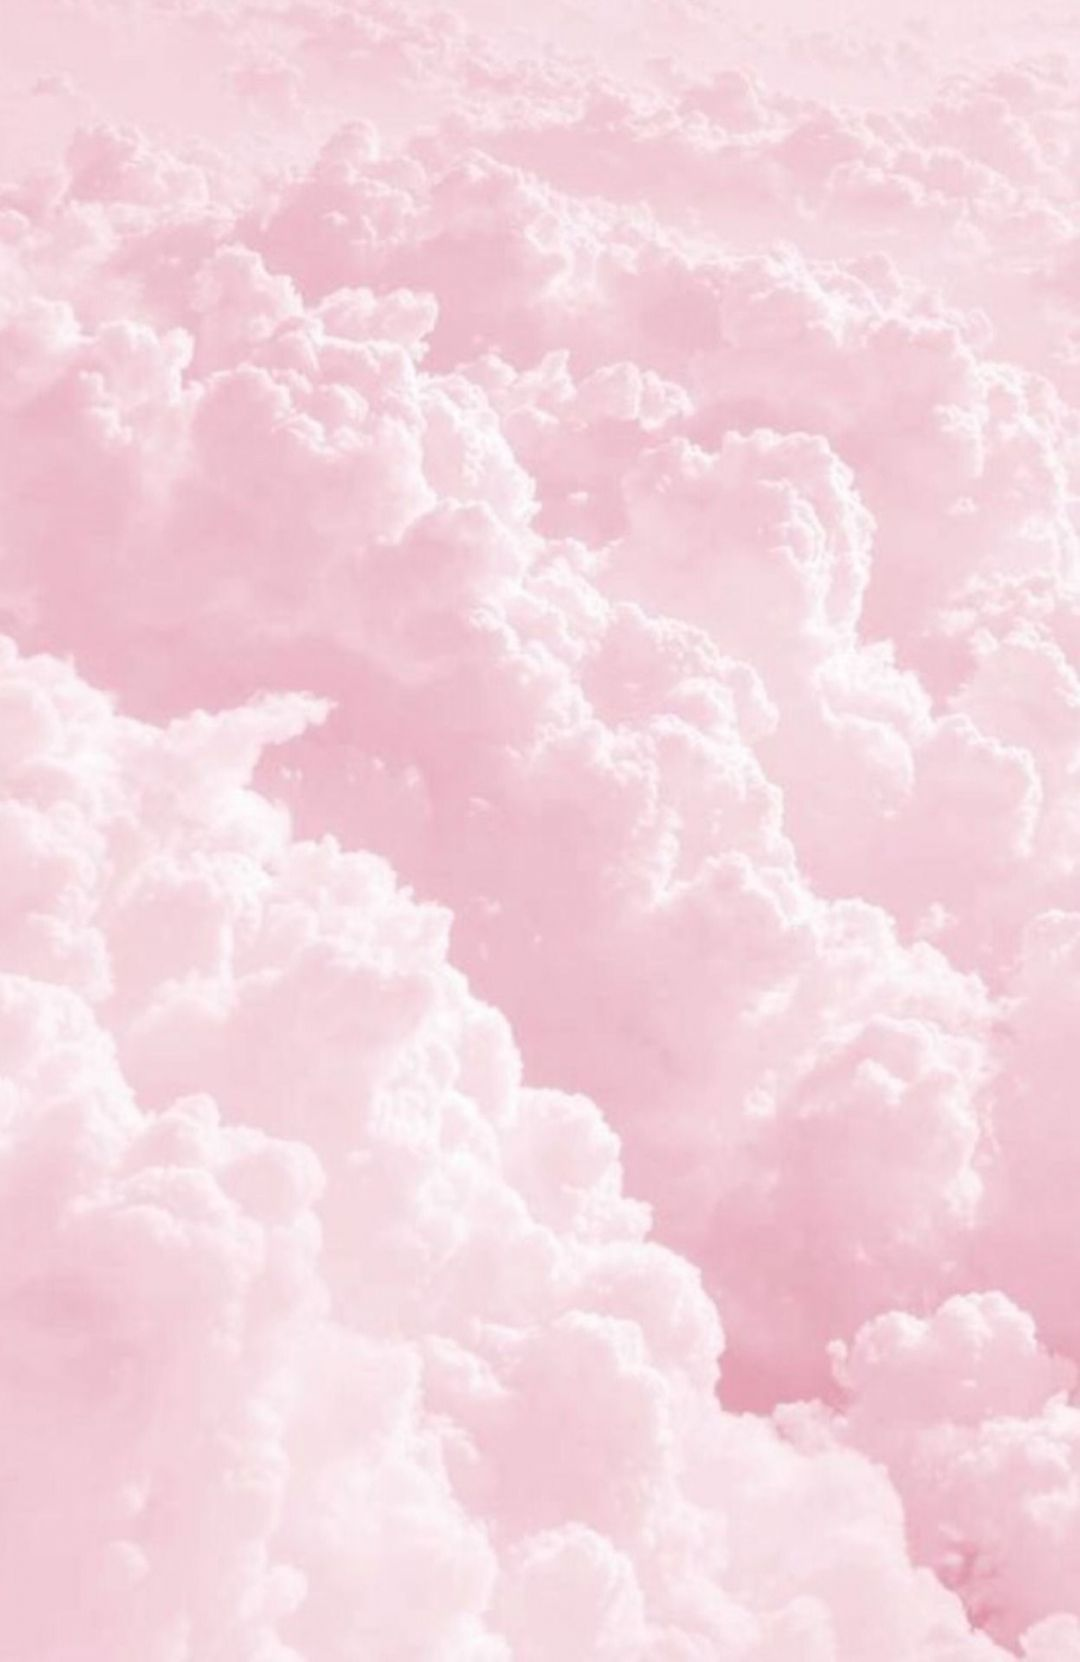 Clouds Android Iphone Desktop Hd Backgrounds Wallpapers